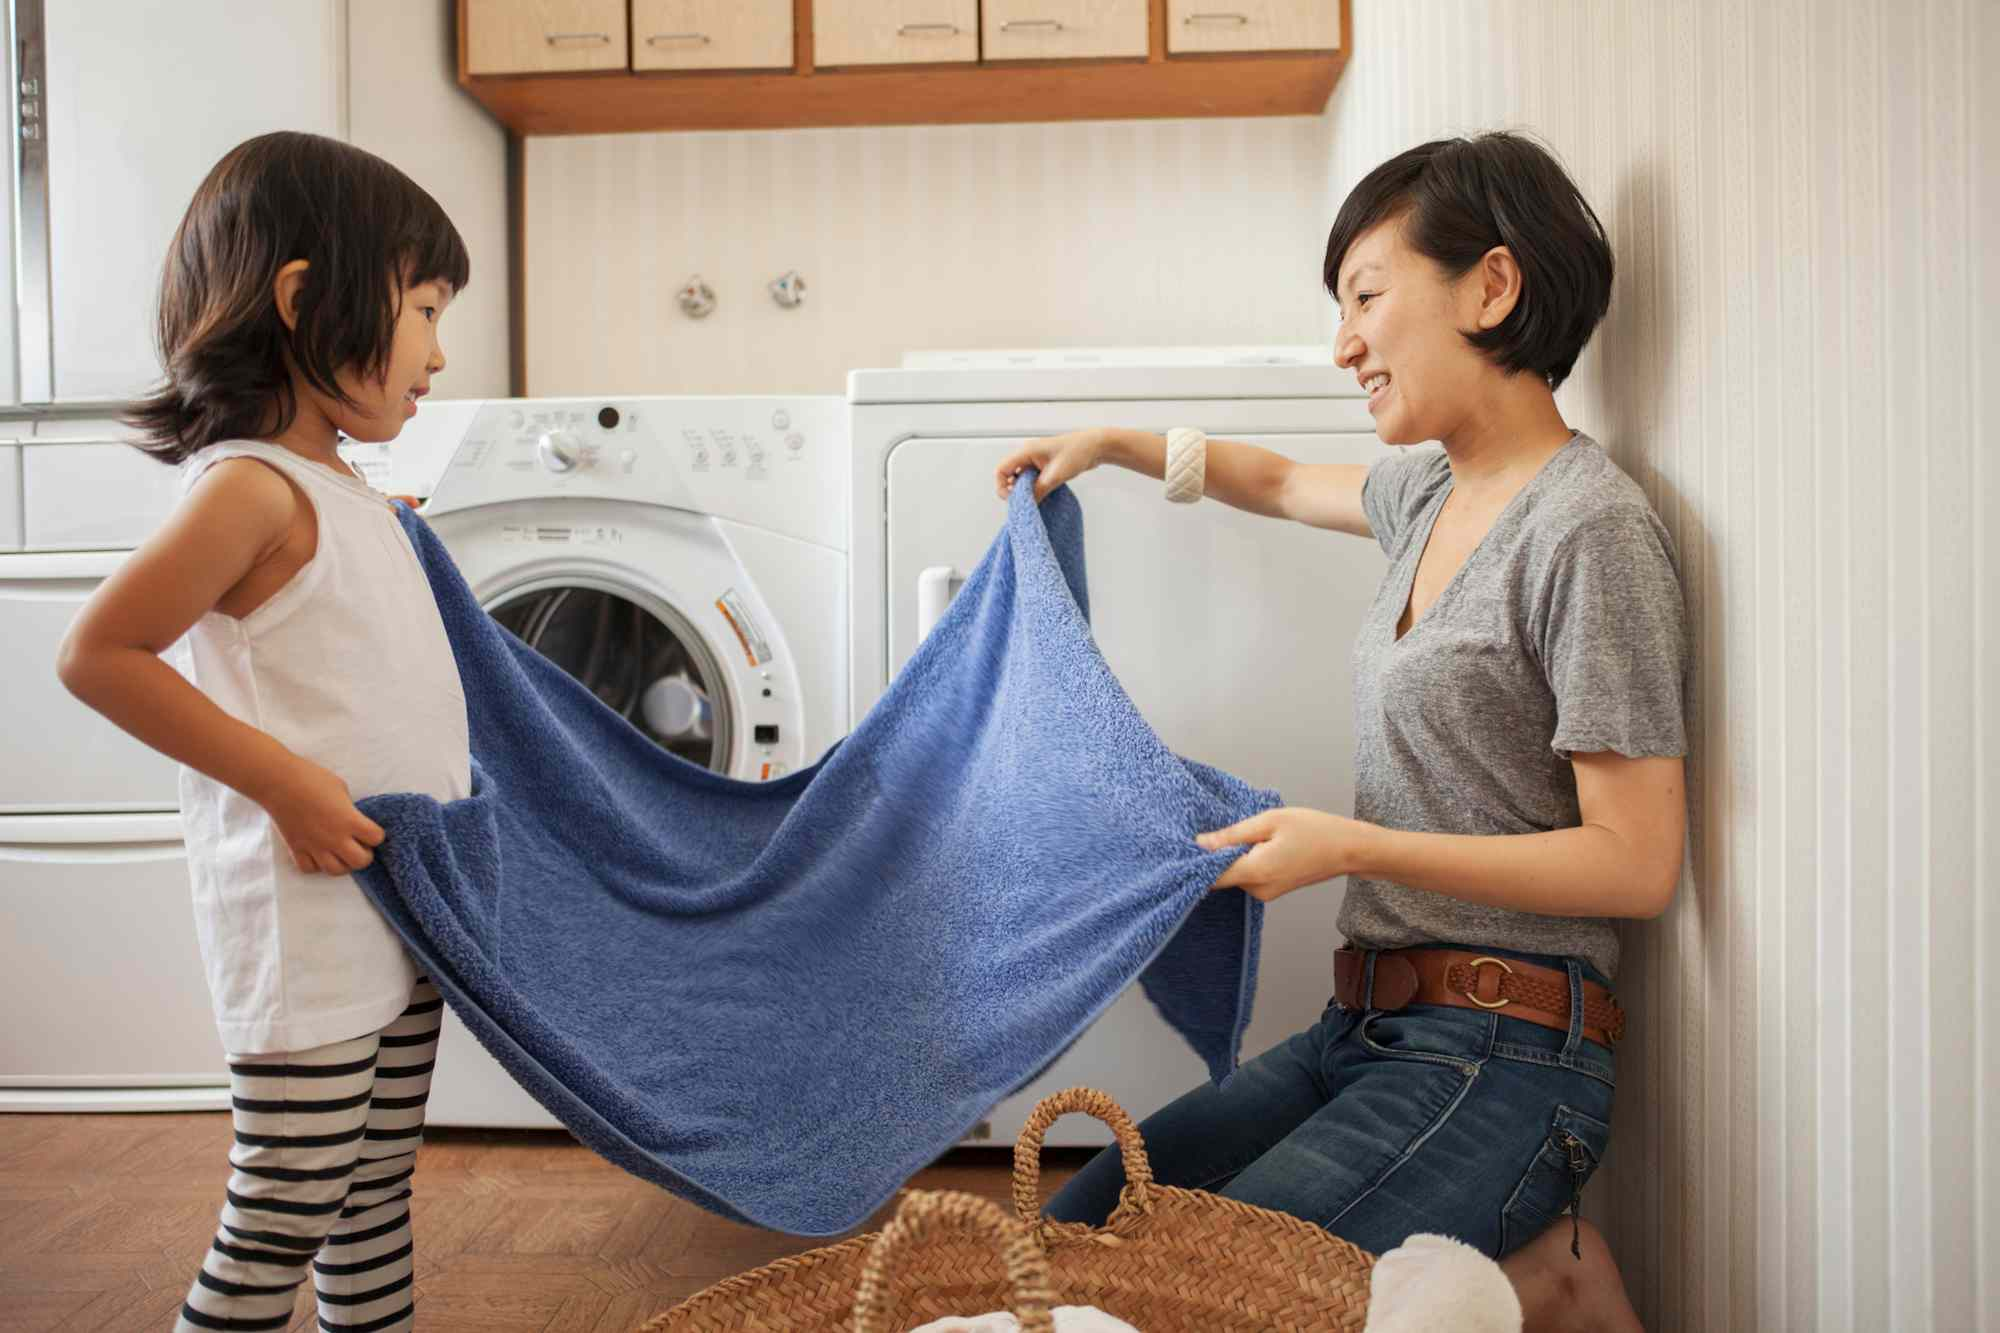 A child and her mother doing laundry together